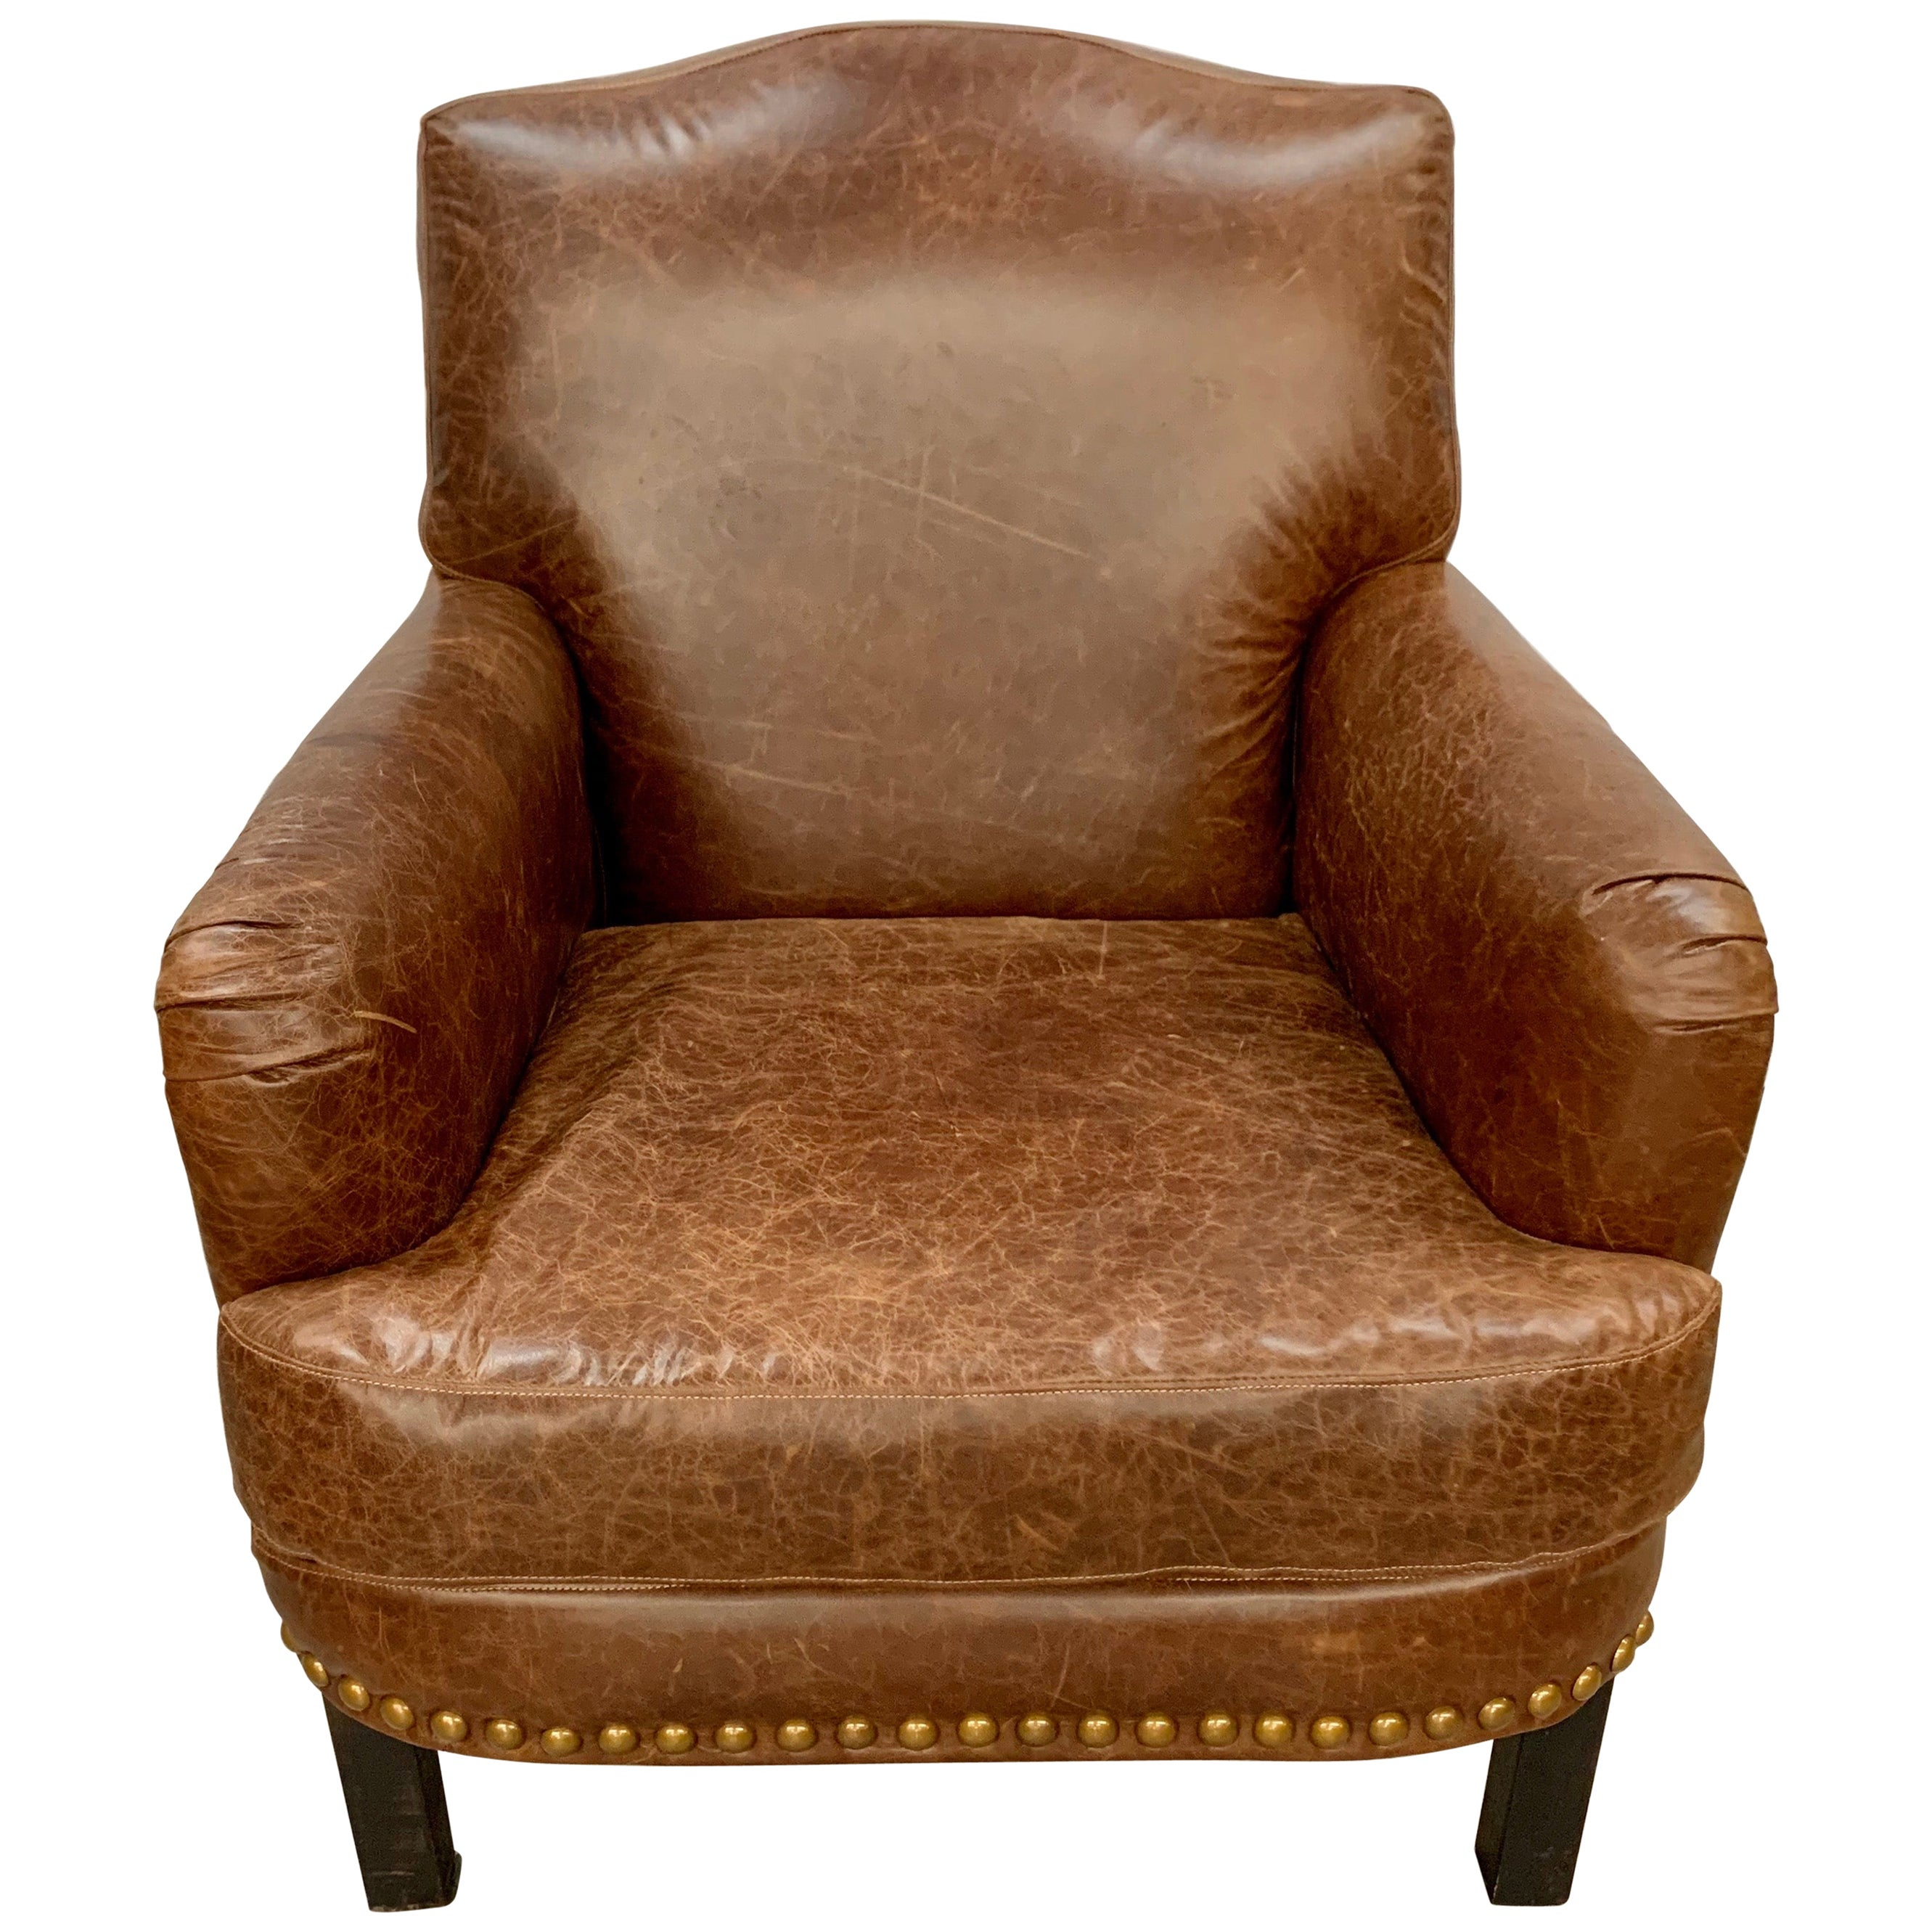 Saddle Brown Leather Nailhead Armchair Club